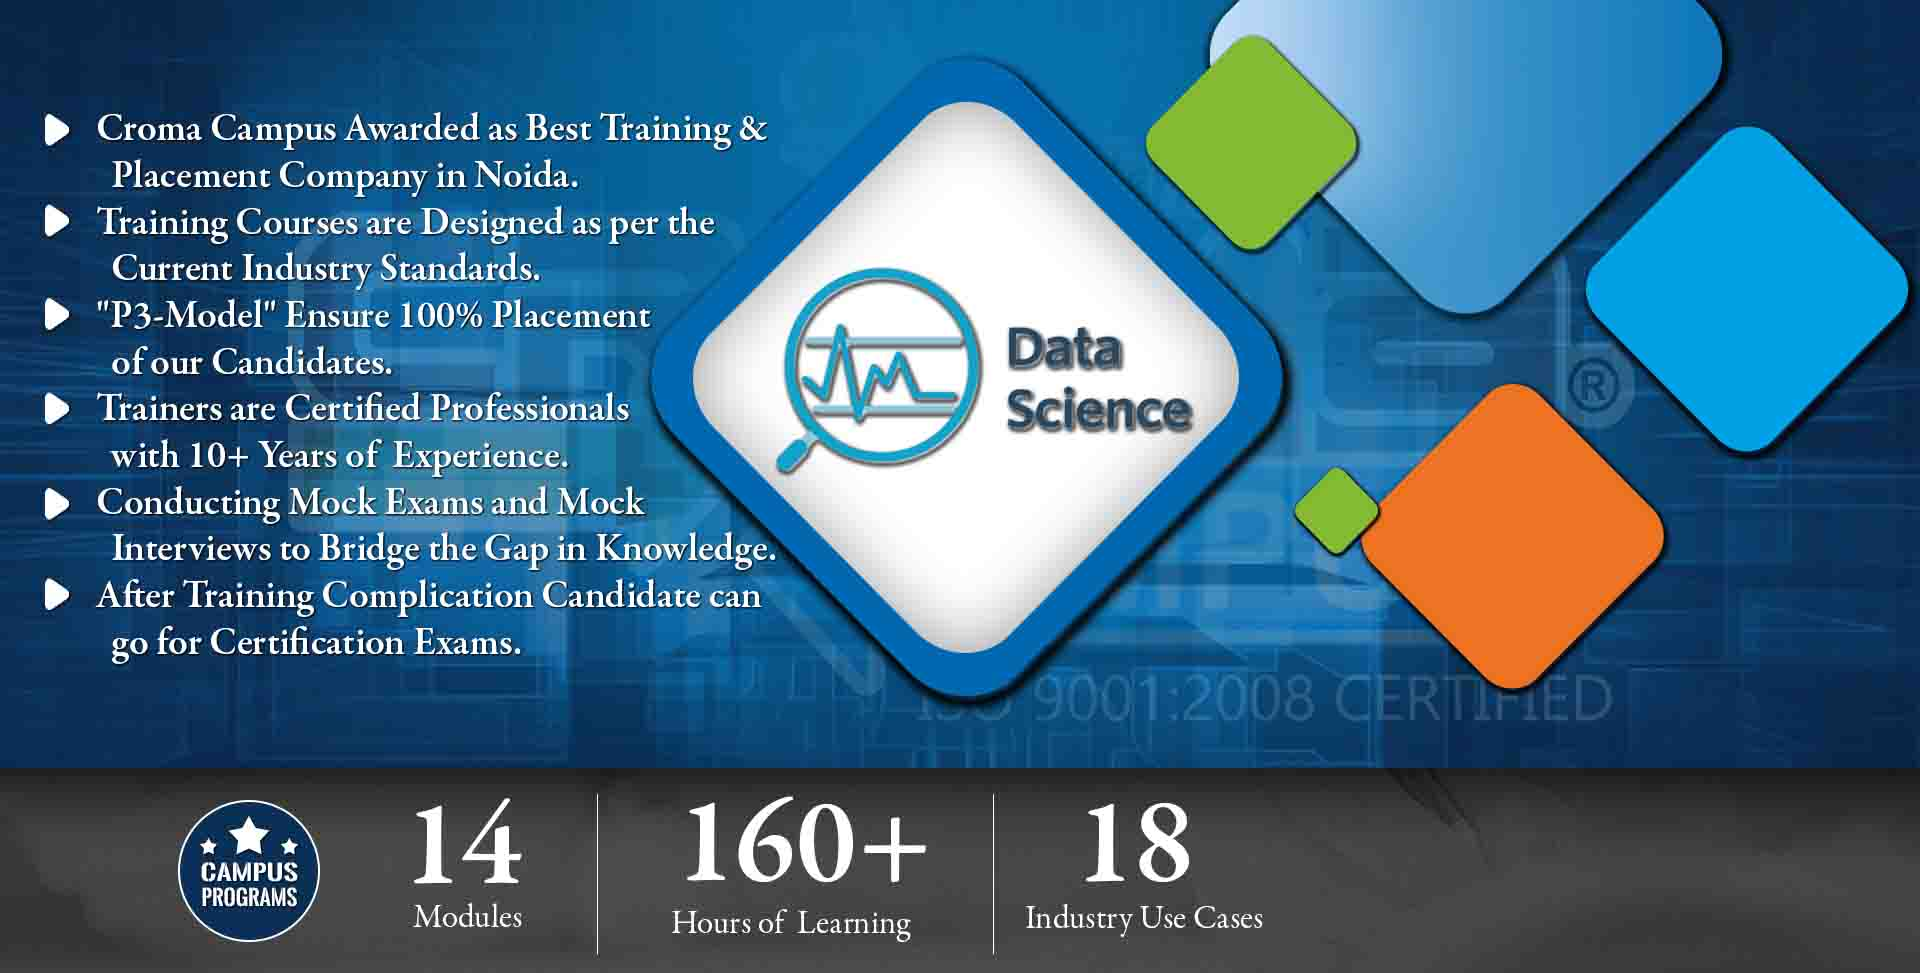 Data Science Training in Noida- Croma Campus